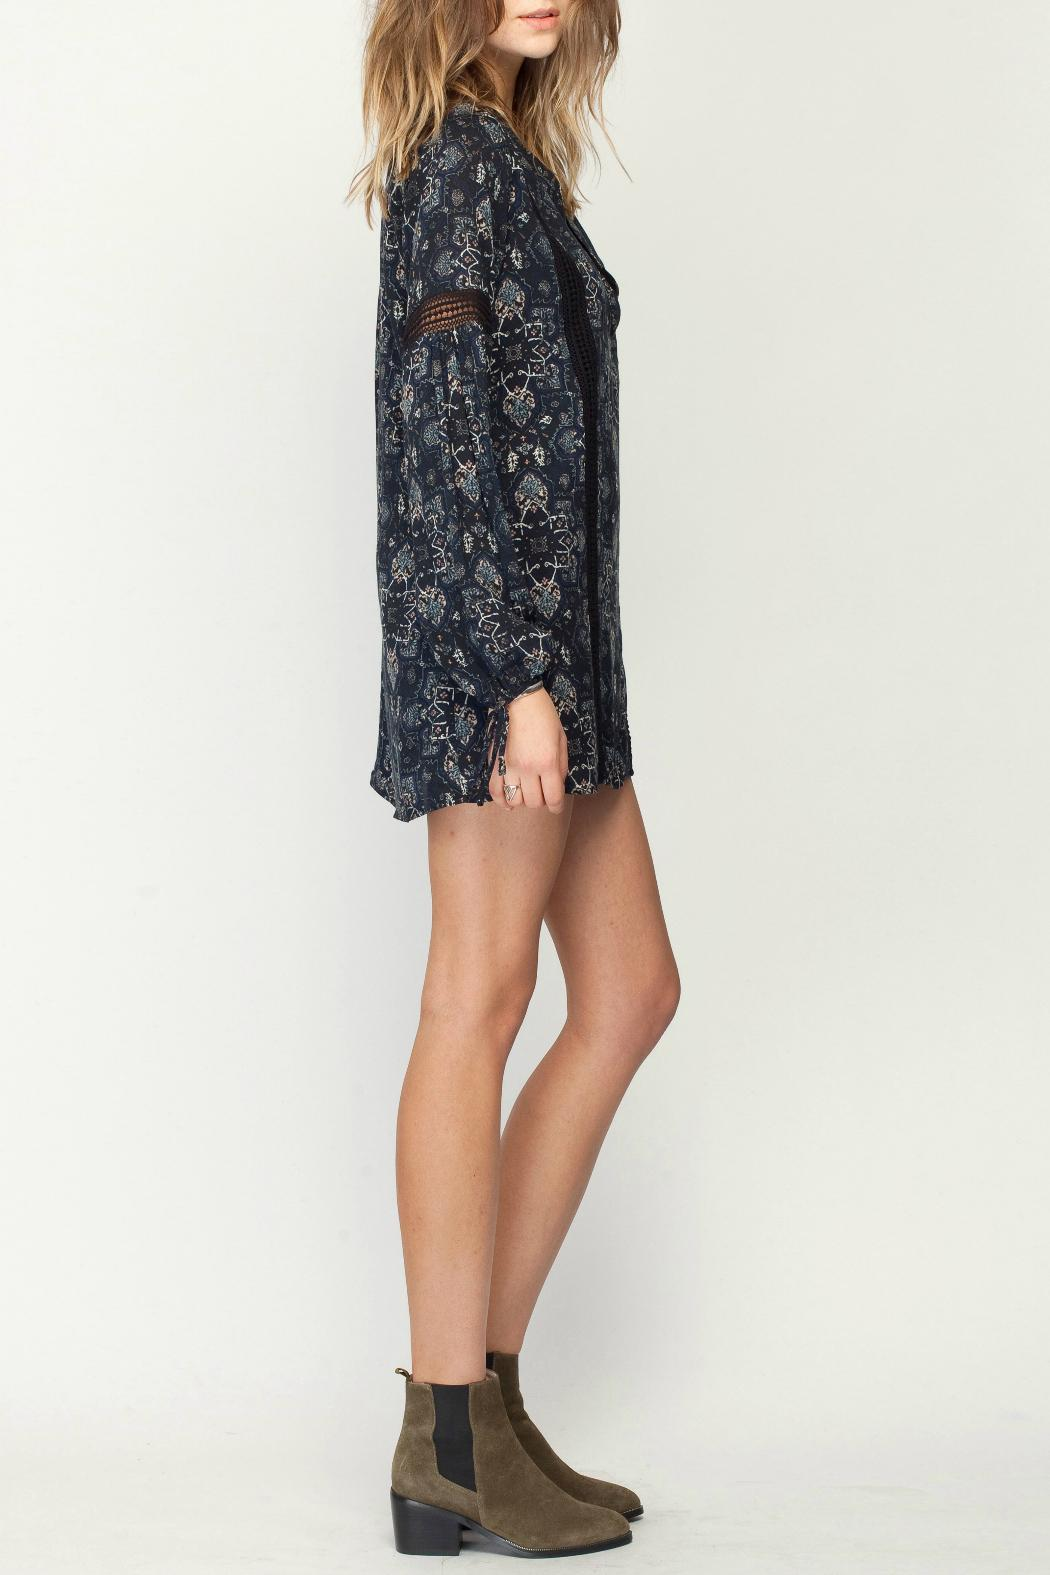 Gentle Fawn Mosaic Print Dress - Side Cropped Image